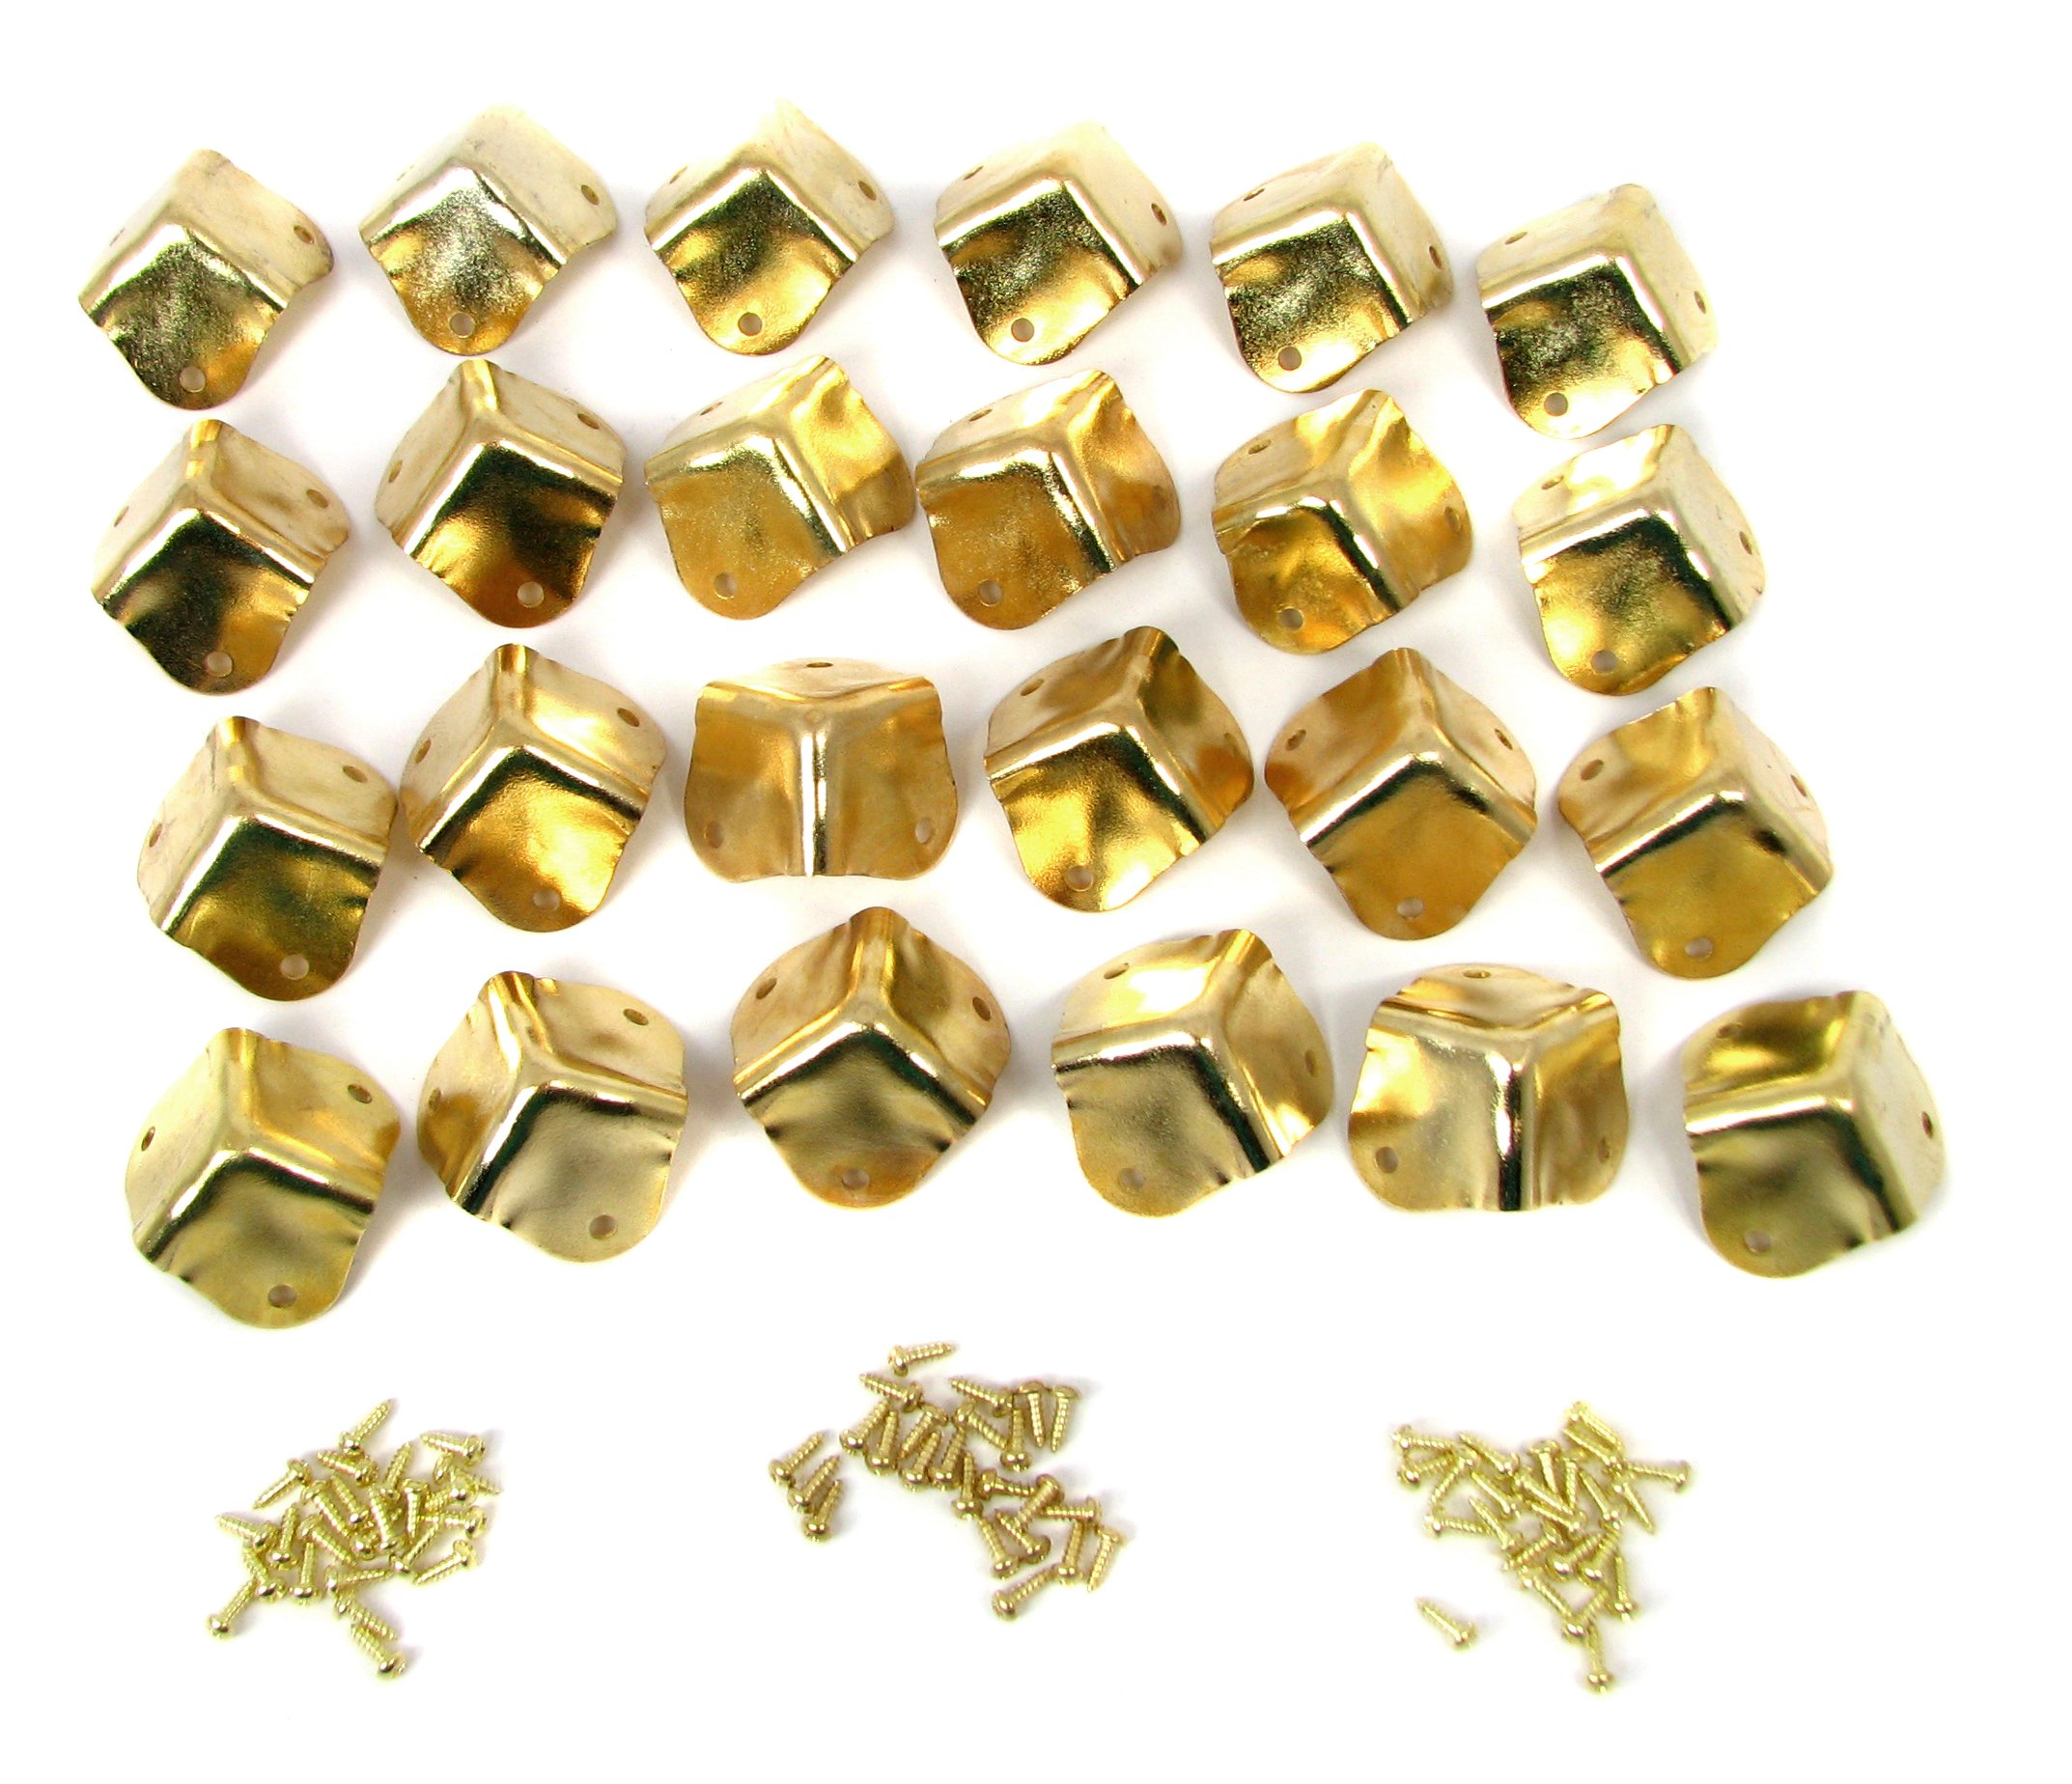 24pcs. Heavy Duty Square Brass-plated Box Corners with Mounting Screws